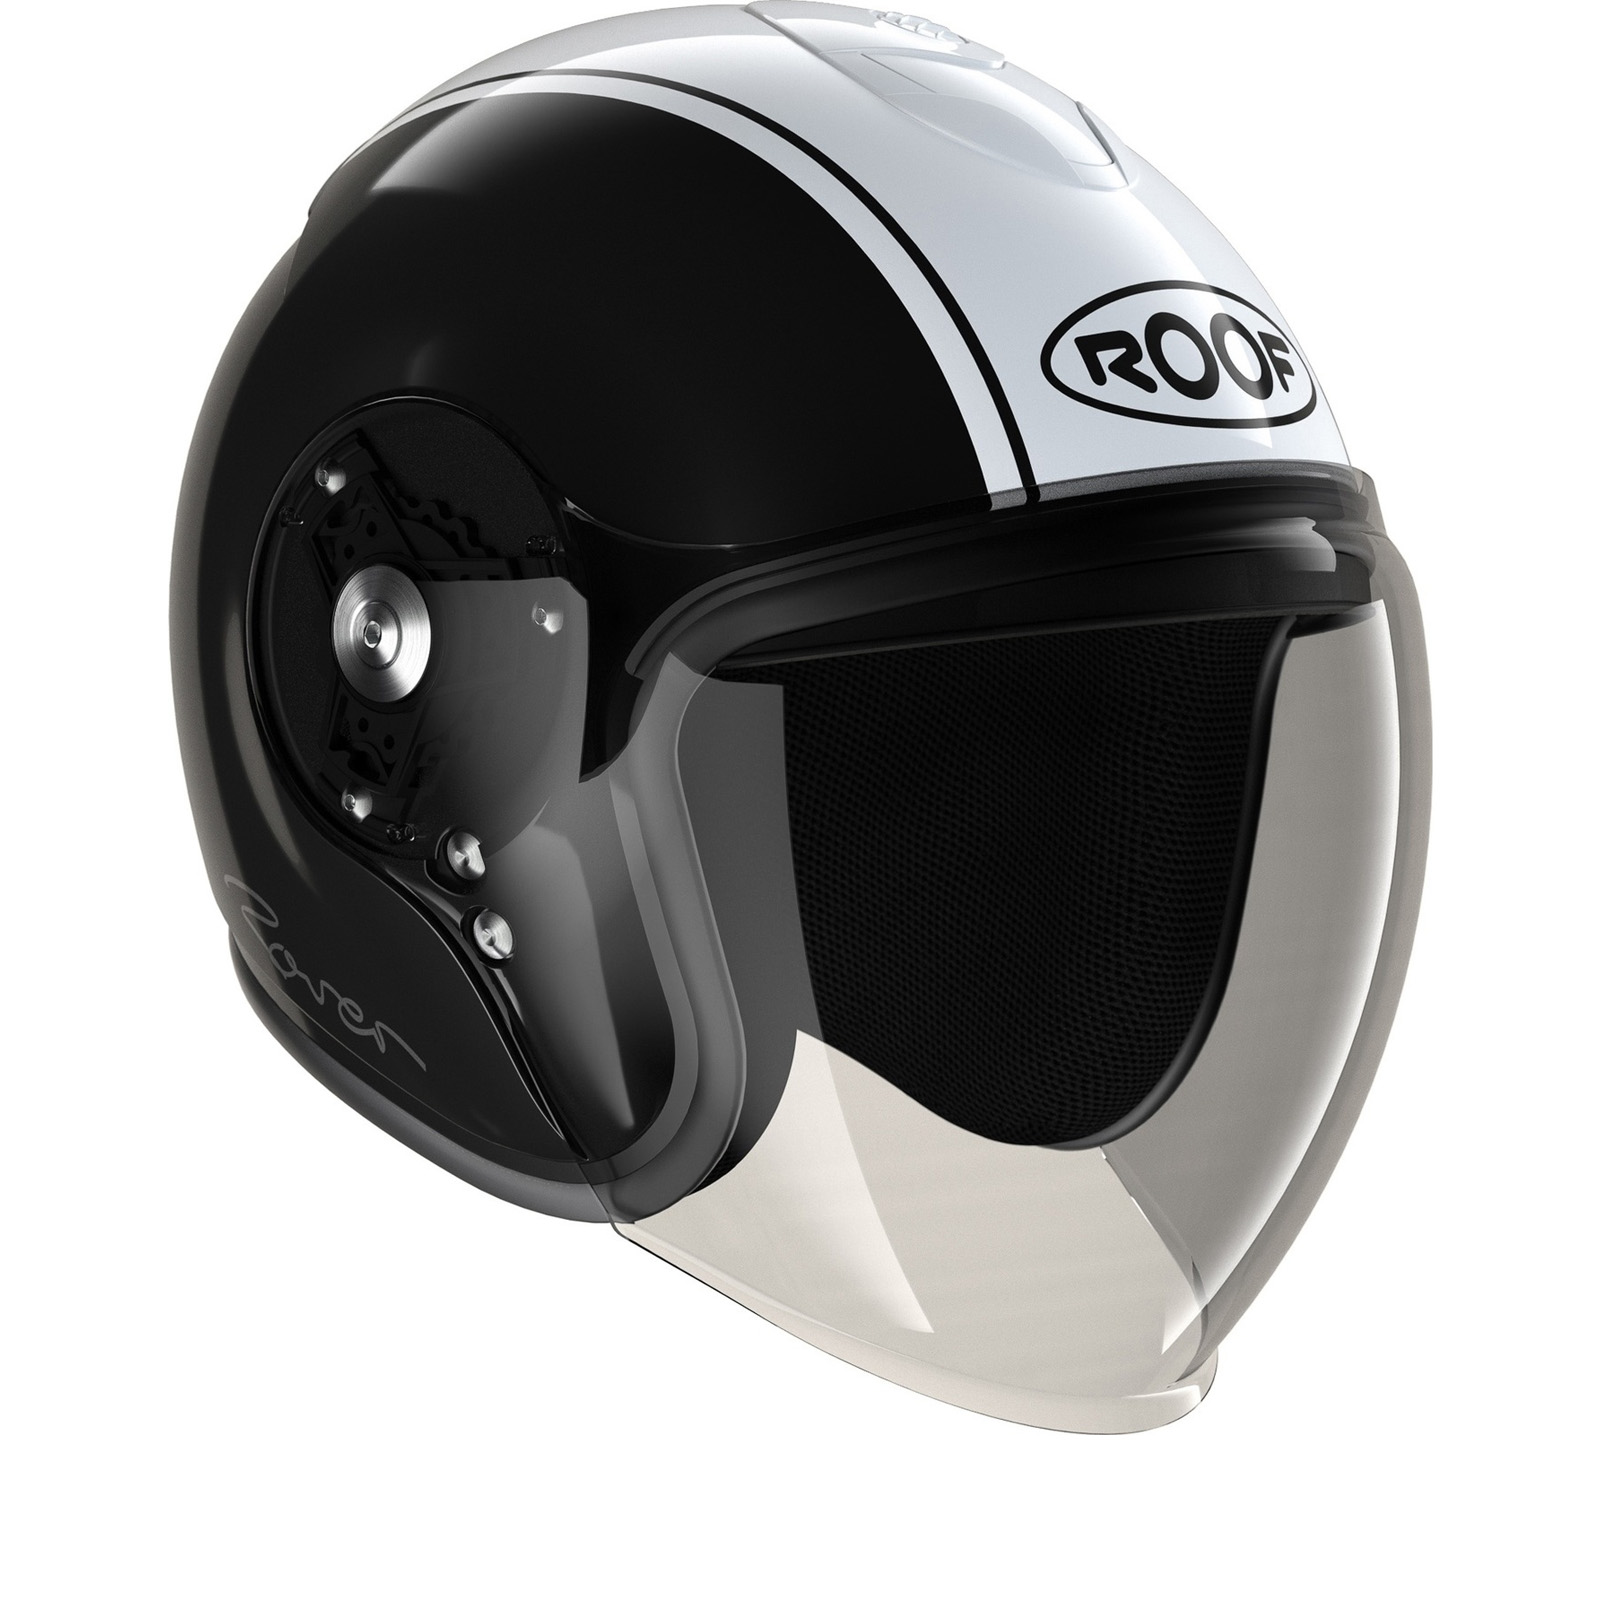 Roof Rover Classic Open Face Motorcycle Helmet Amp Visor